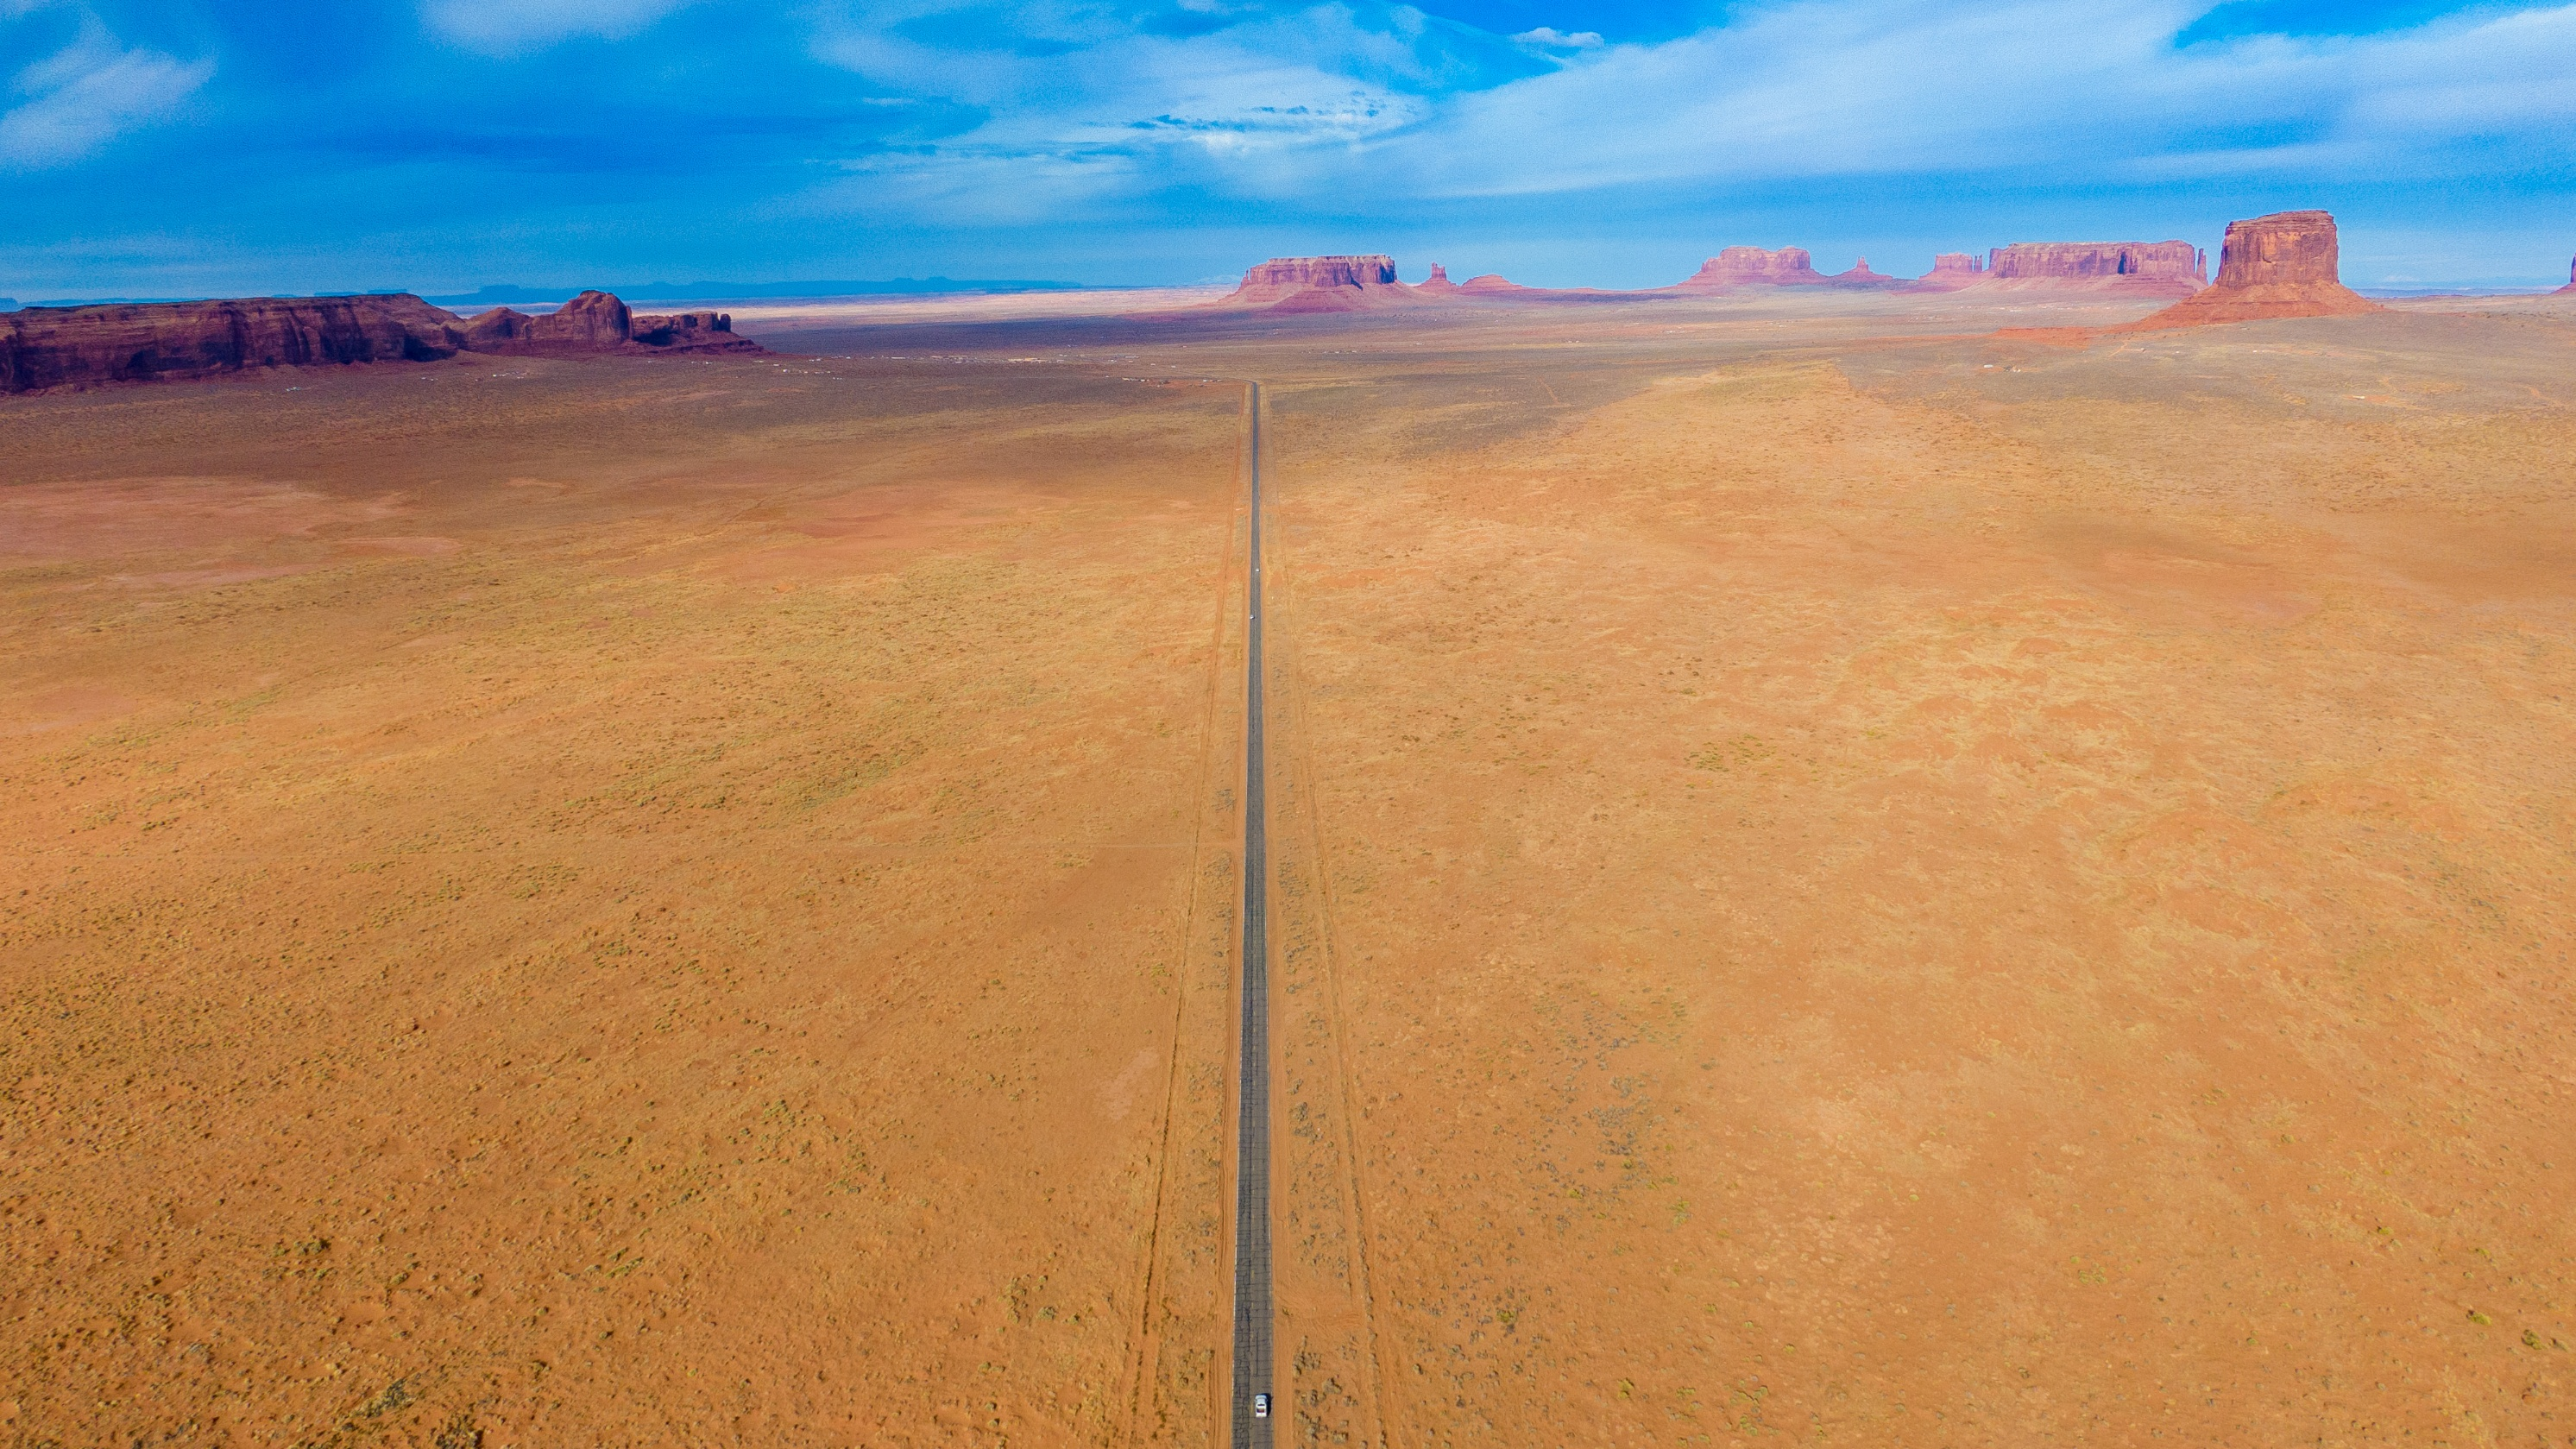 Monument valley road from the air. (Scott Taylor)